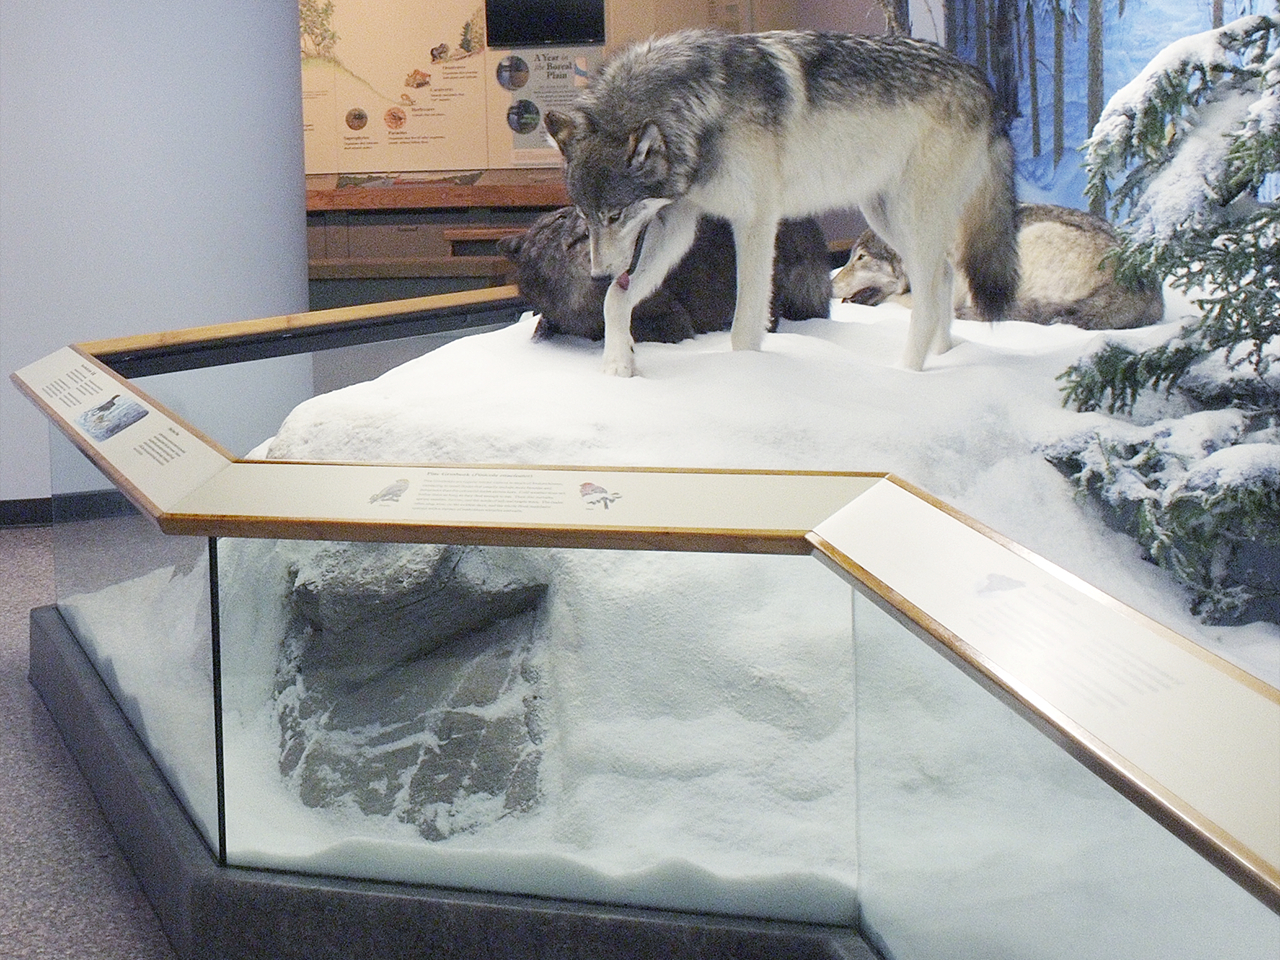 diorama and railings with a wolf